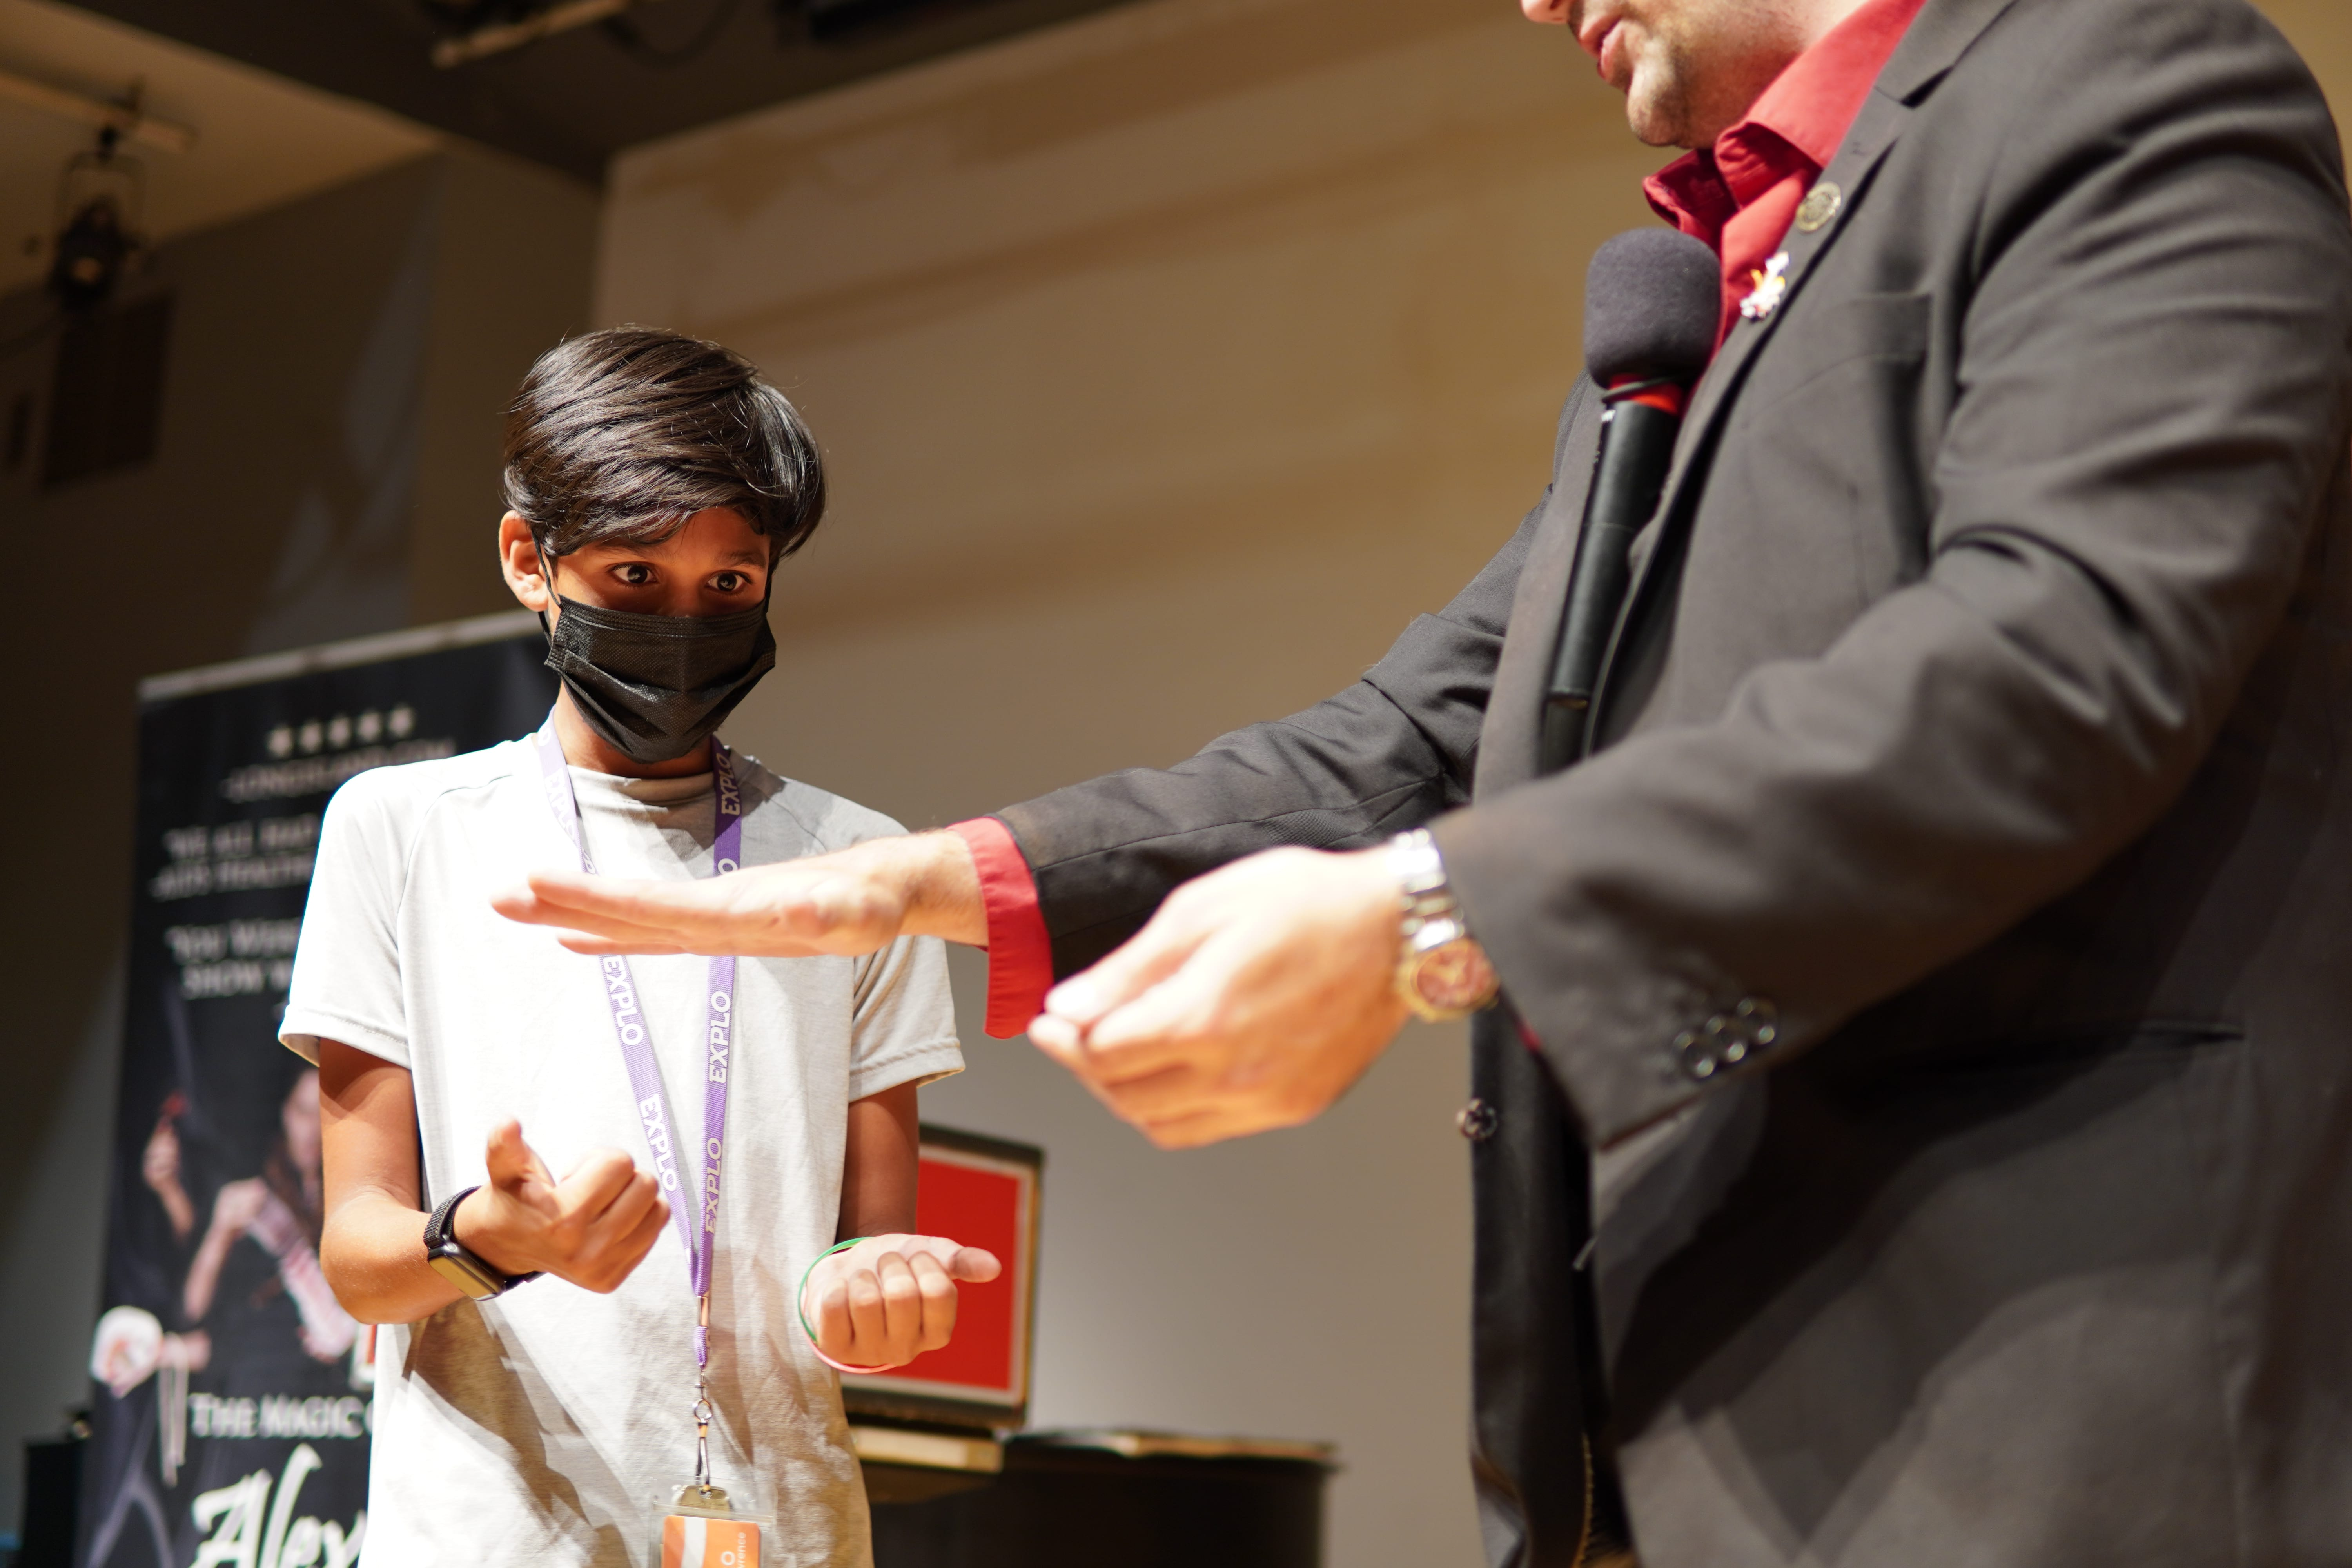 A student in a gray t-shirt holds his hands out while the magician hovers his over the student's to perform a magic trick.